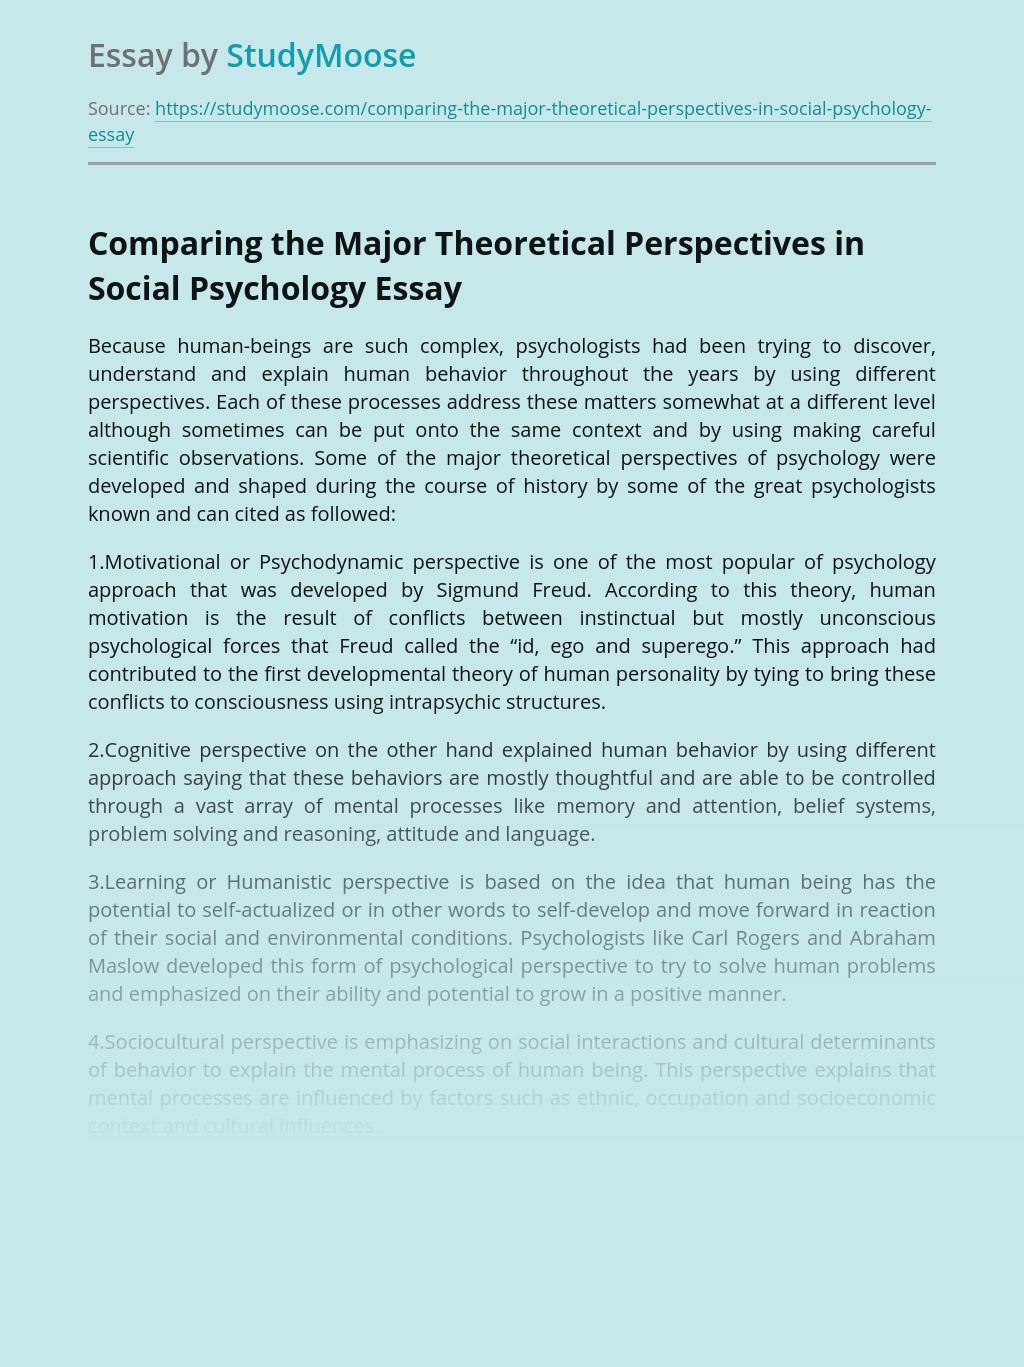 Comparing the Major Theoretical Perspectives in Social Psychology